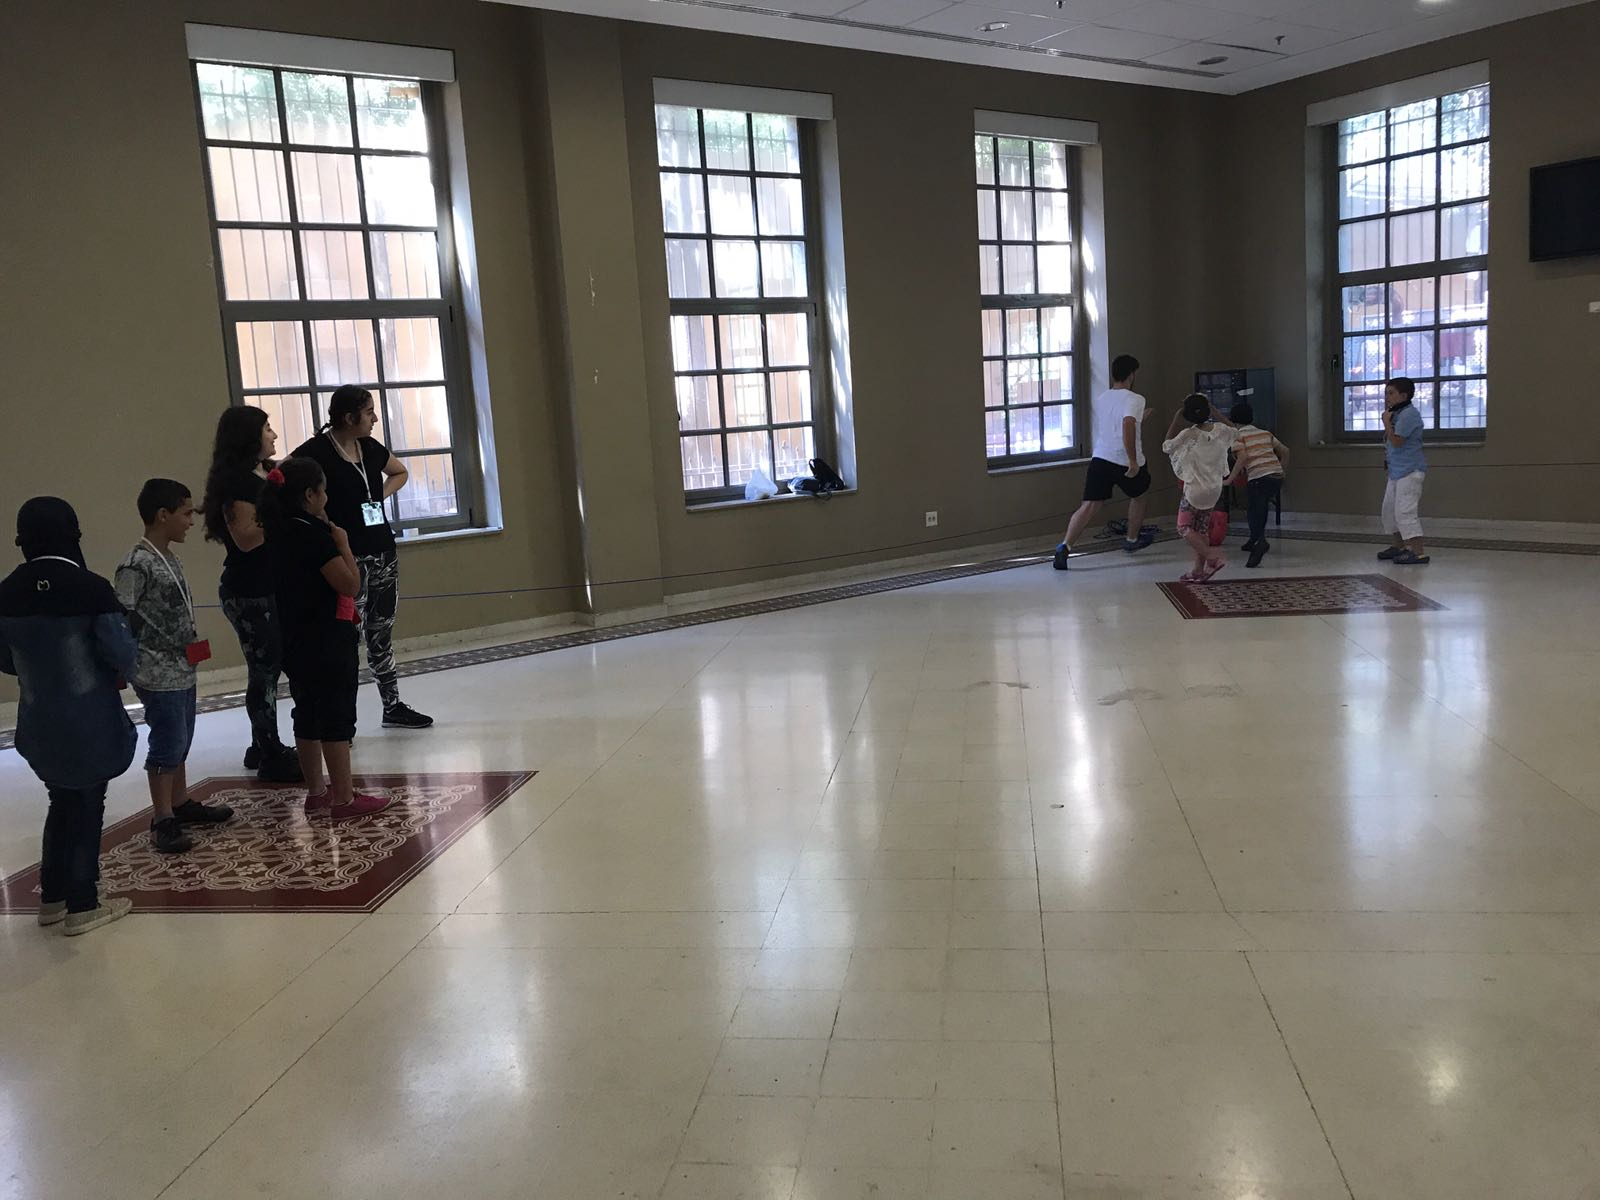 In the picture: a group of about four children, to the left, watch a group of about four other children, to the right, practice a soccer drill in the corner of an open room while a volunteer supervises.